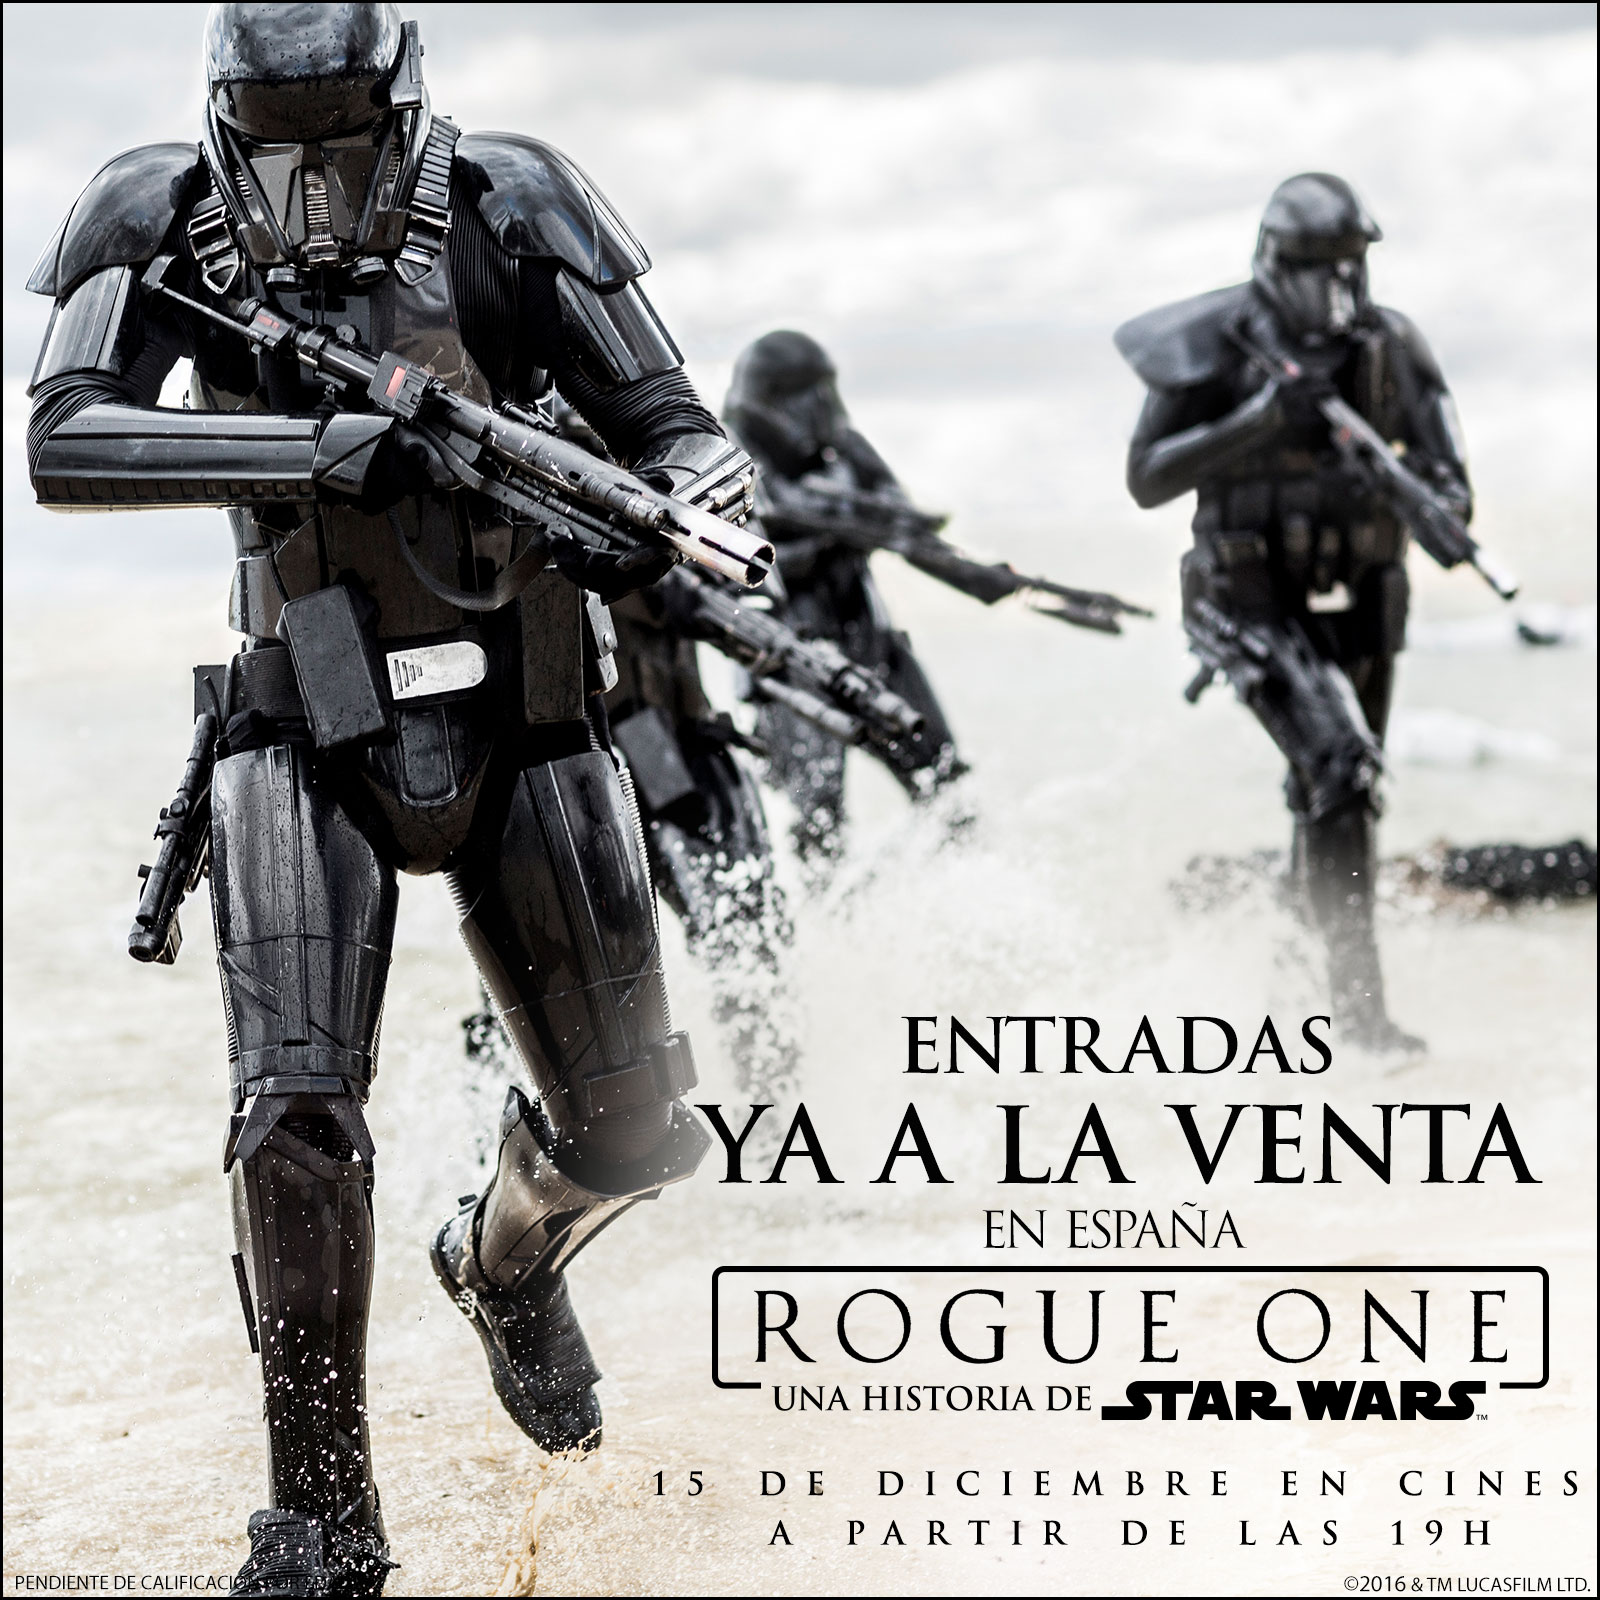 Rogue One: Una Historia De Star Wars. Entradas ya a la venta!